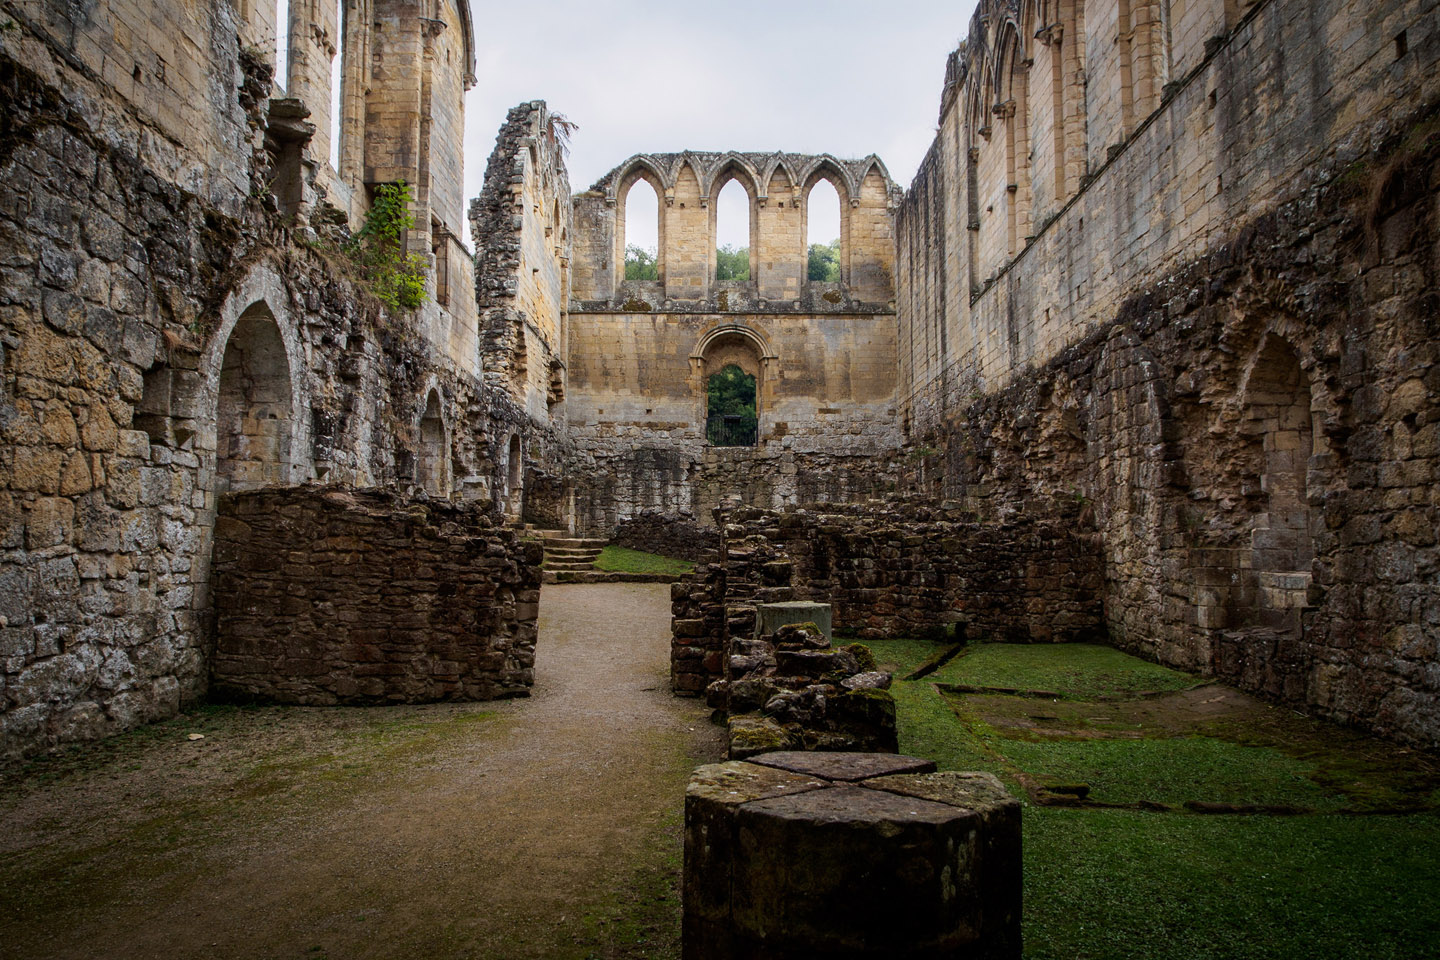 Today, a museum is housed in the abbey, led by English Heritage, a company/charity that is responsible for the preservation of more than 400 historic sites across England